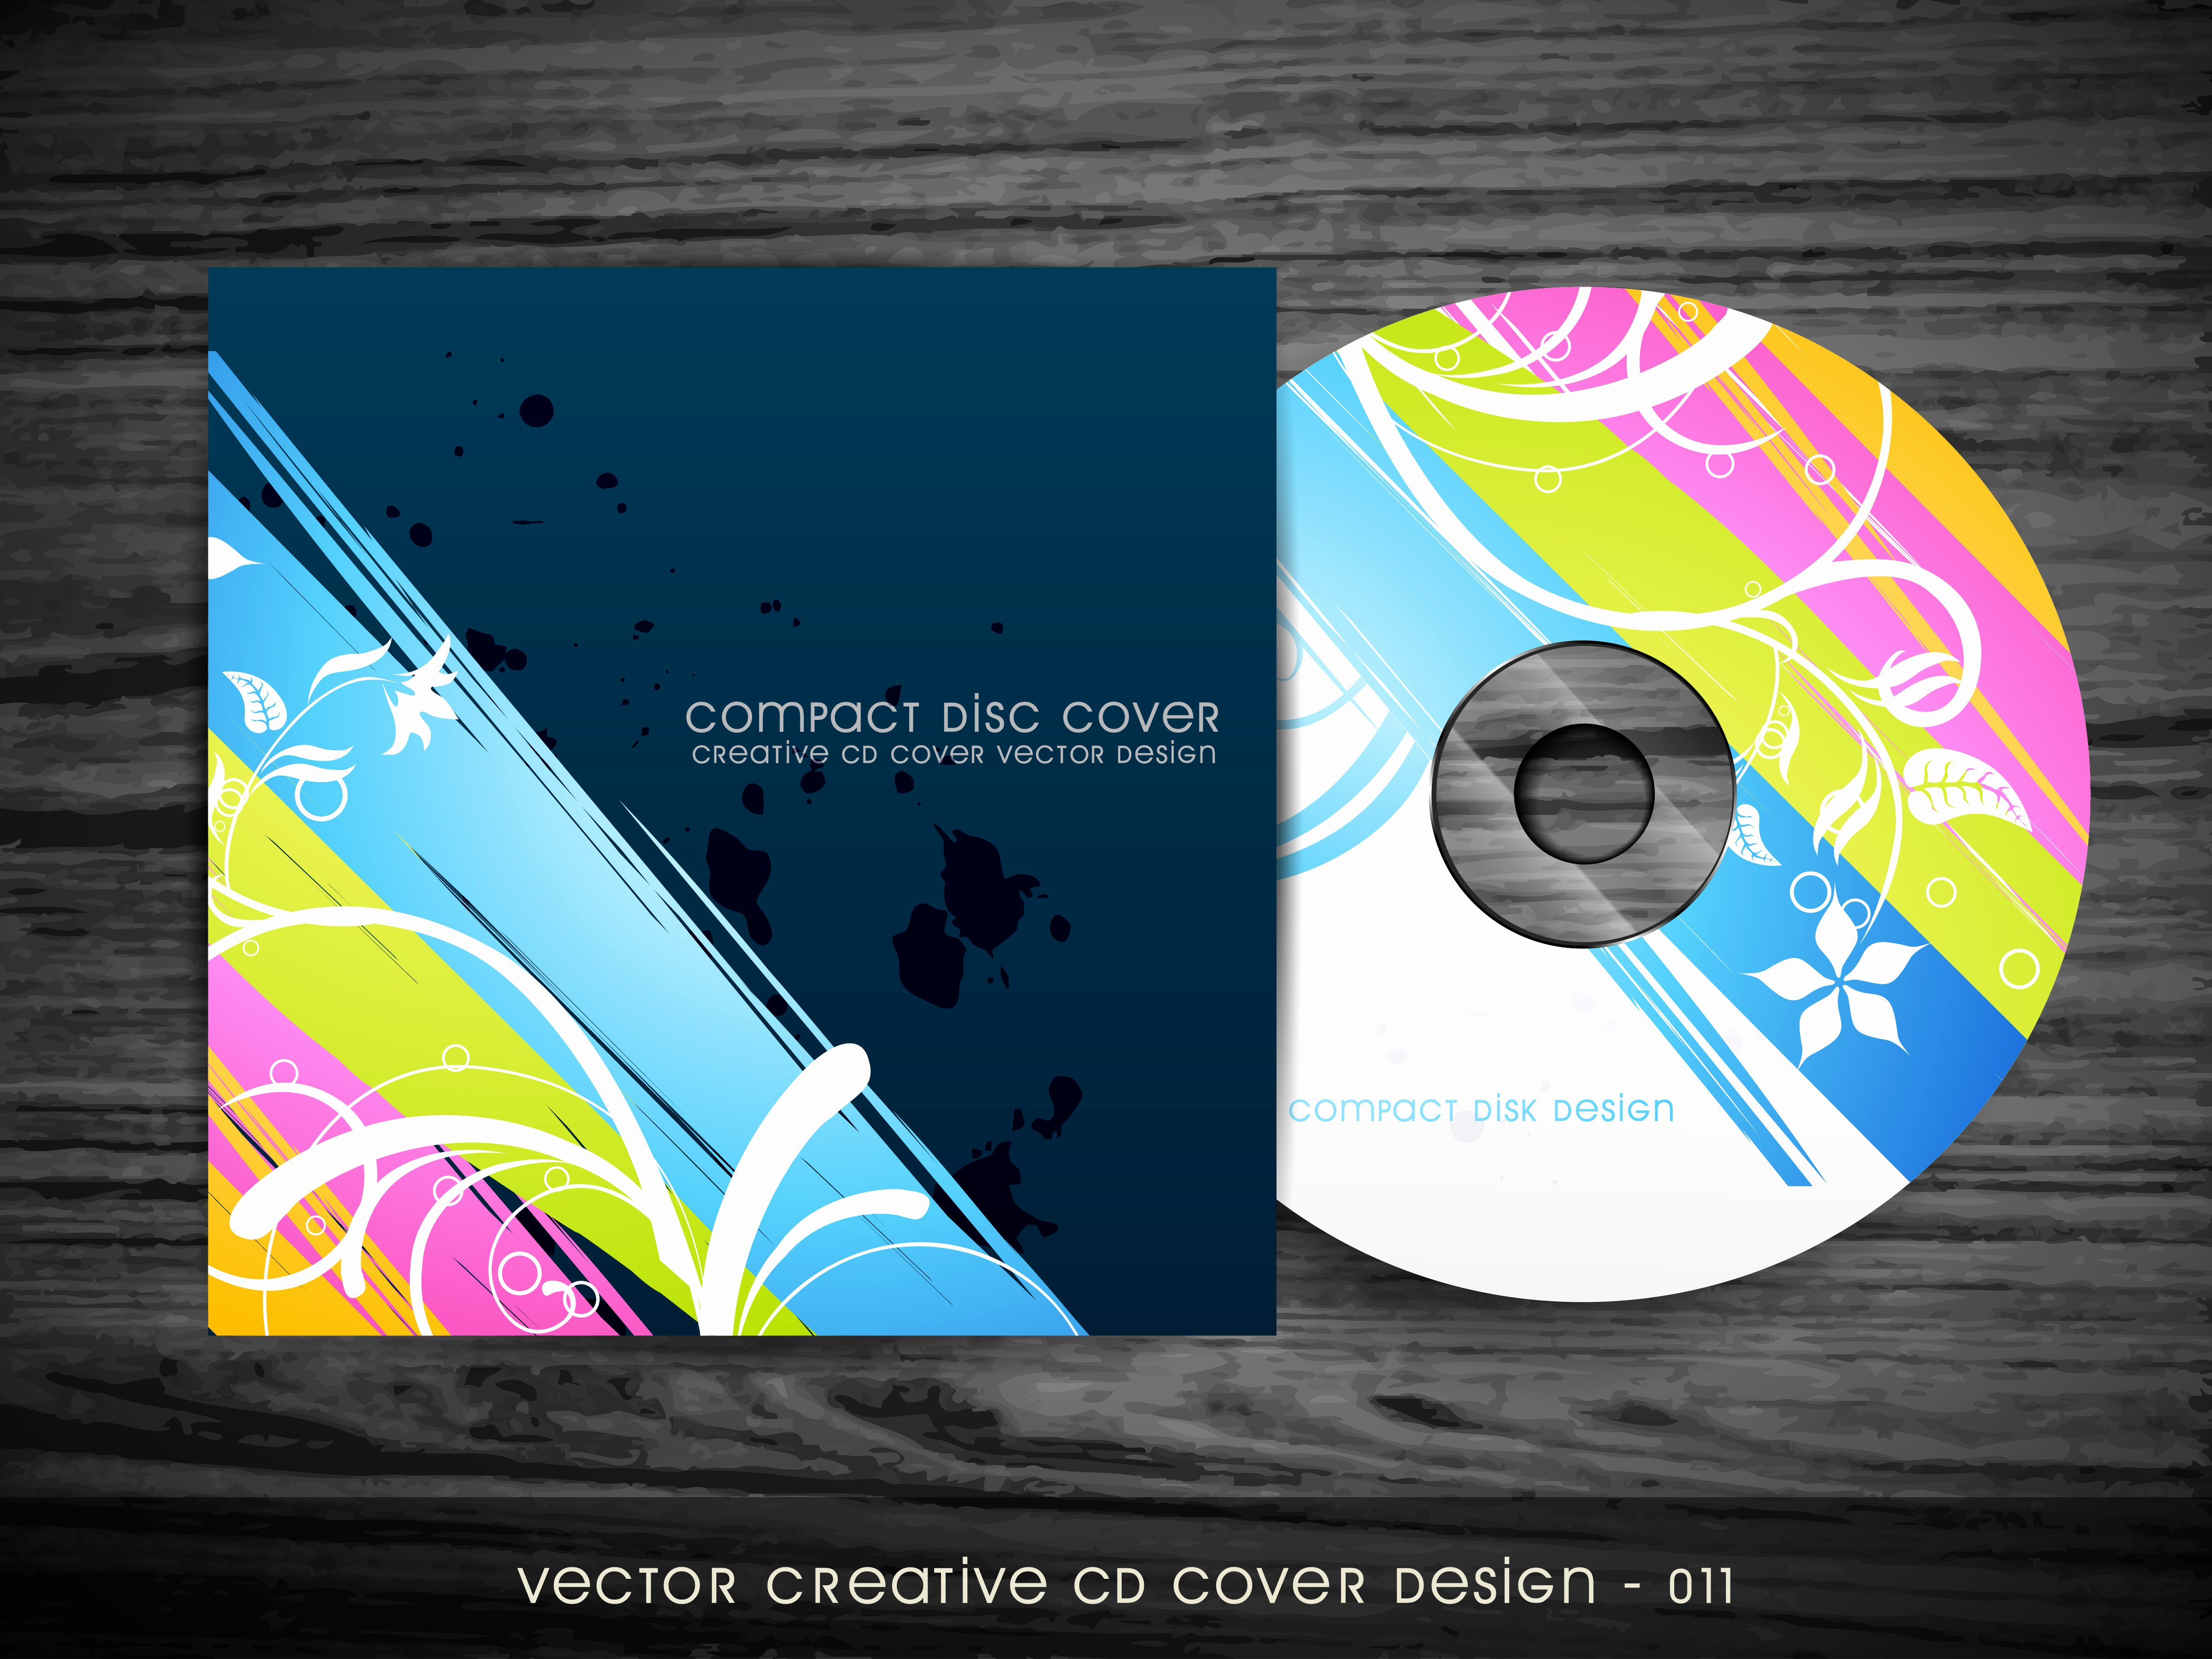 Free Dvd Cover Art New Colorful Cd Cover Design Download Free Vectors Clipart